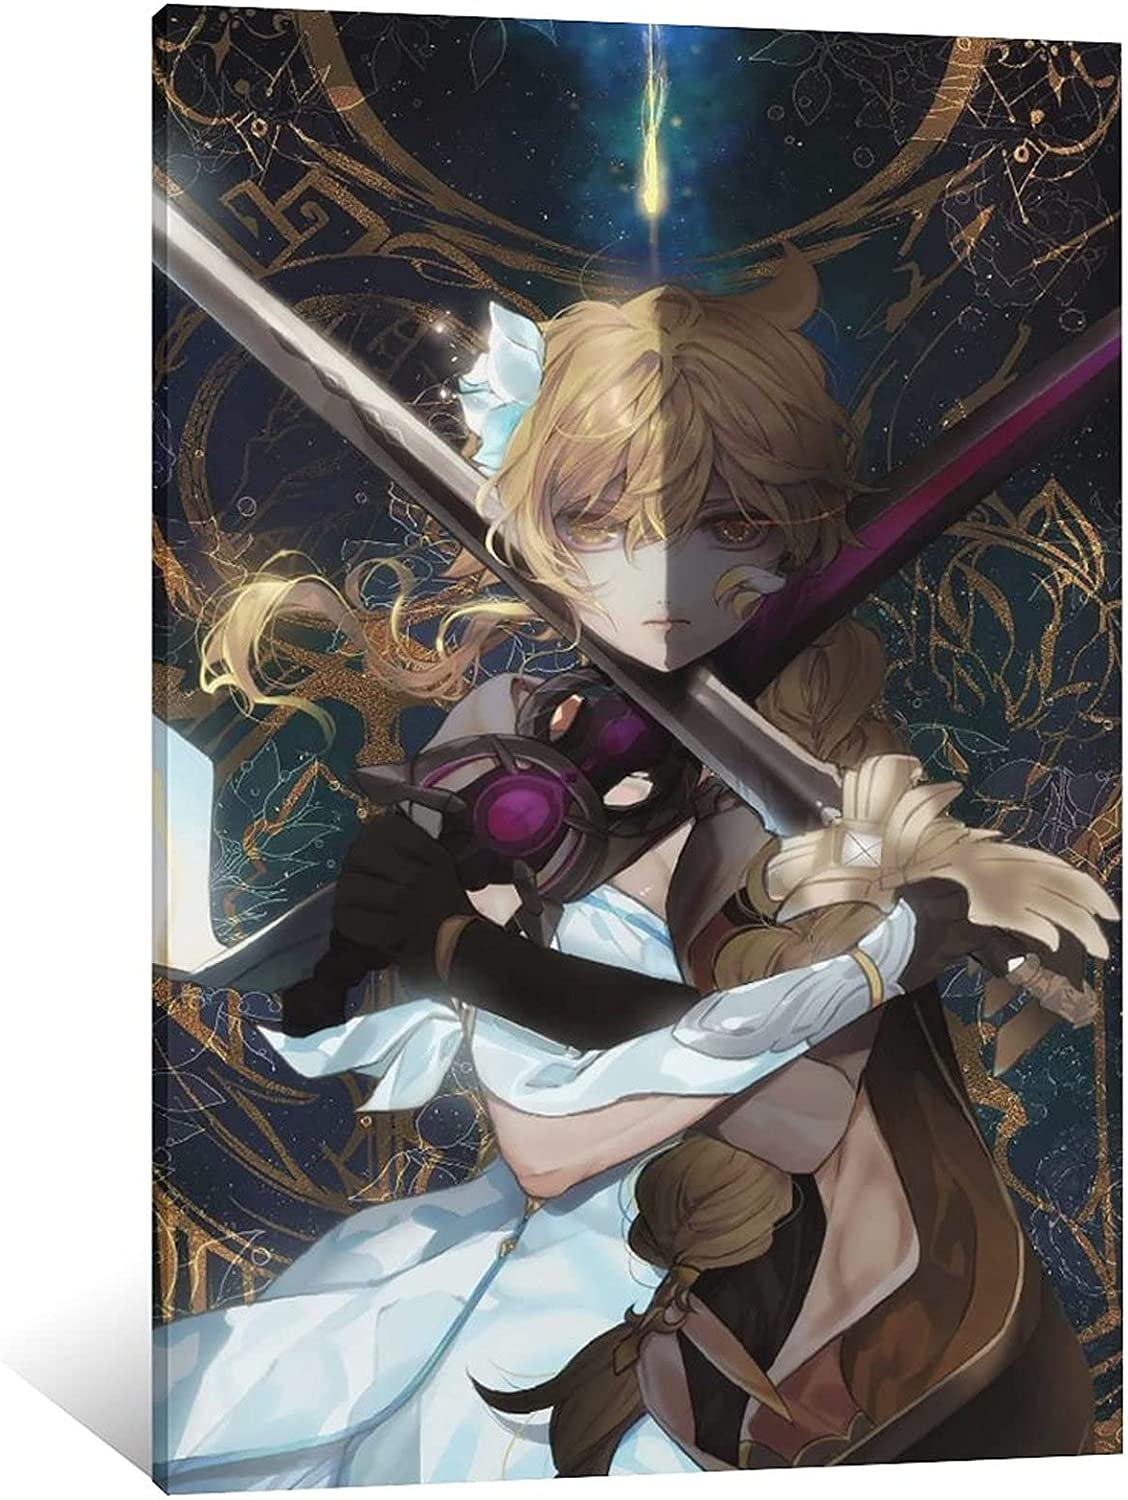 ZMQ Anime Cute Large discharge sale Girl Houston Mall Holding A Decoration Poster C Sword Painting